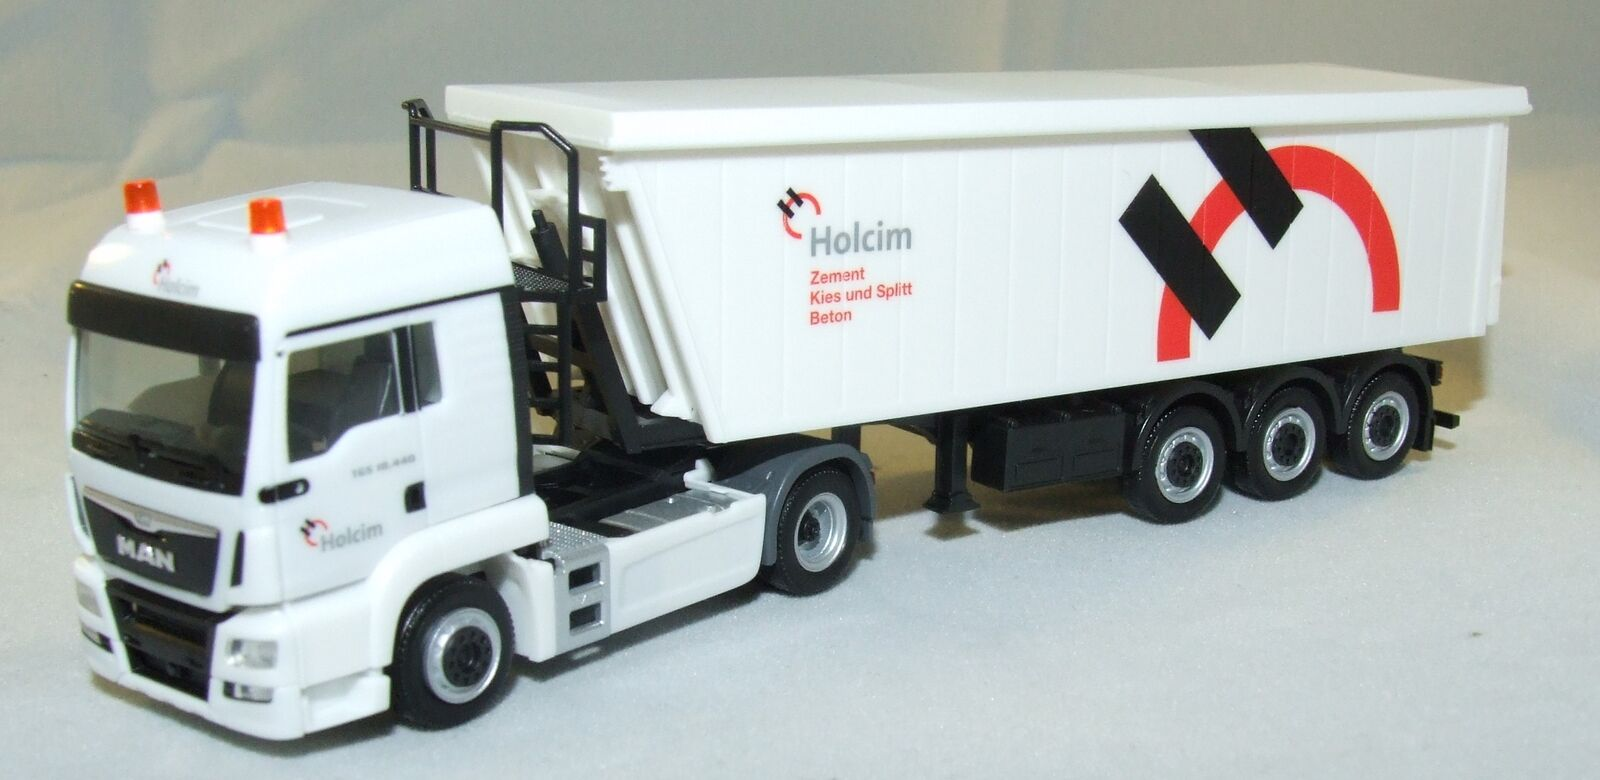 306171 Herpa Camion Semi-Remorque Holcim Man Tgs LX 1 87